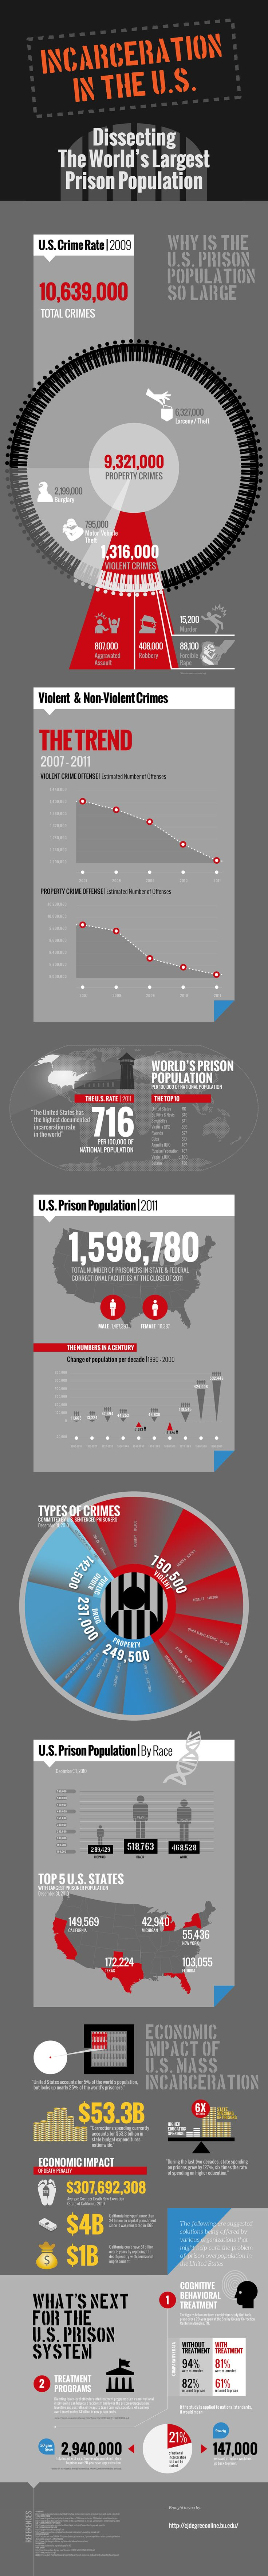 Incarceration In The United States #Infographic #Incarceration